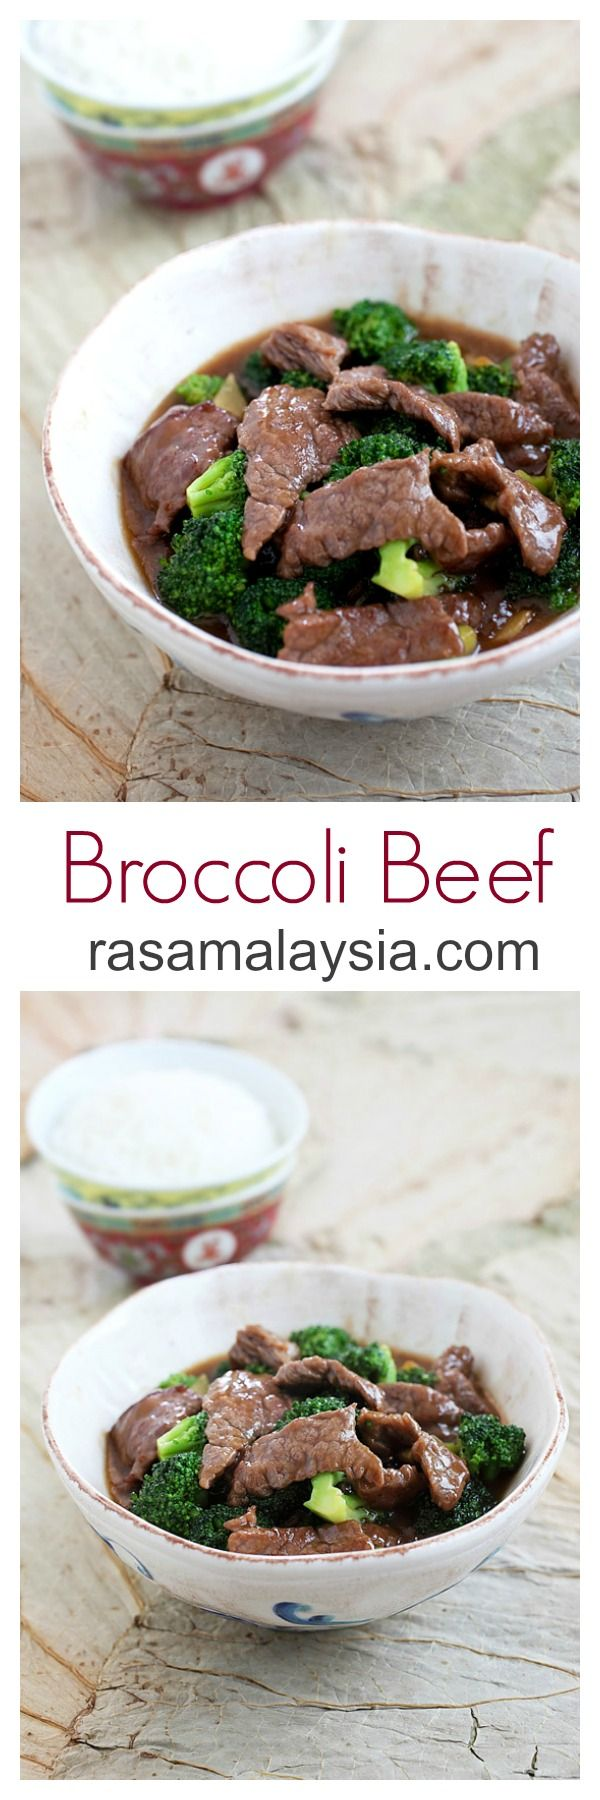 USA- Broccoli Beef - silky and tender beef and healthy broccoli in a super yummy brown sauce | rasamalaysia.com